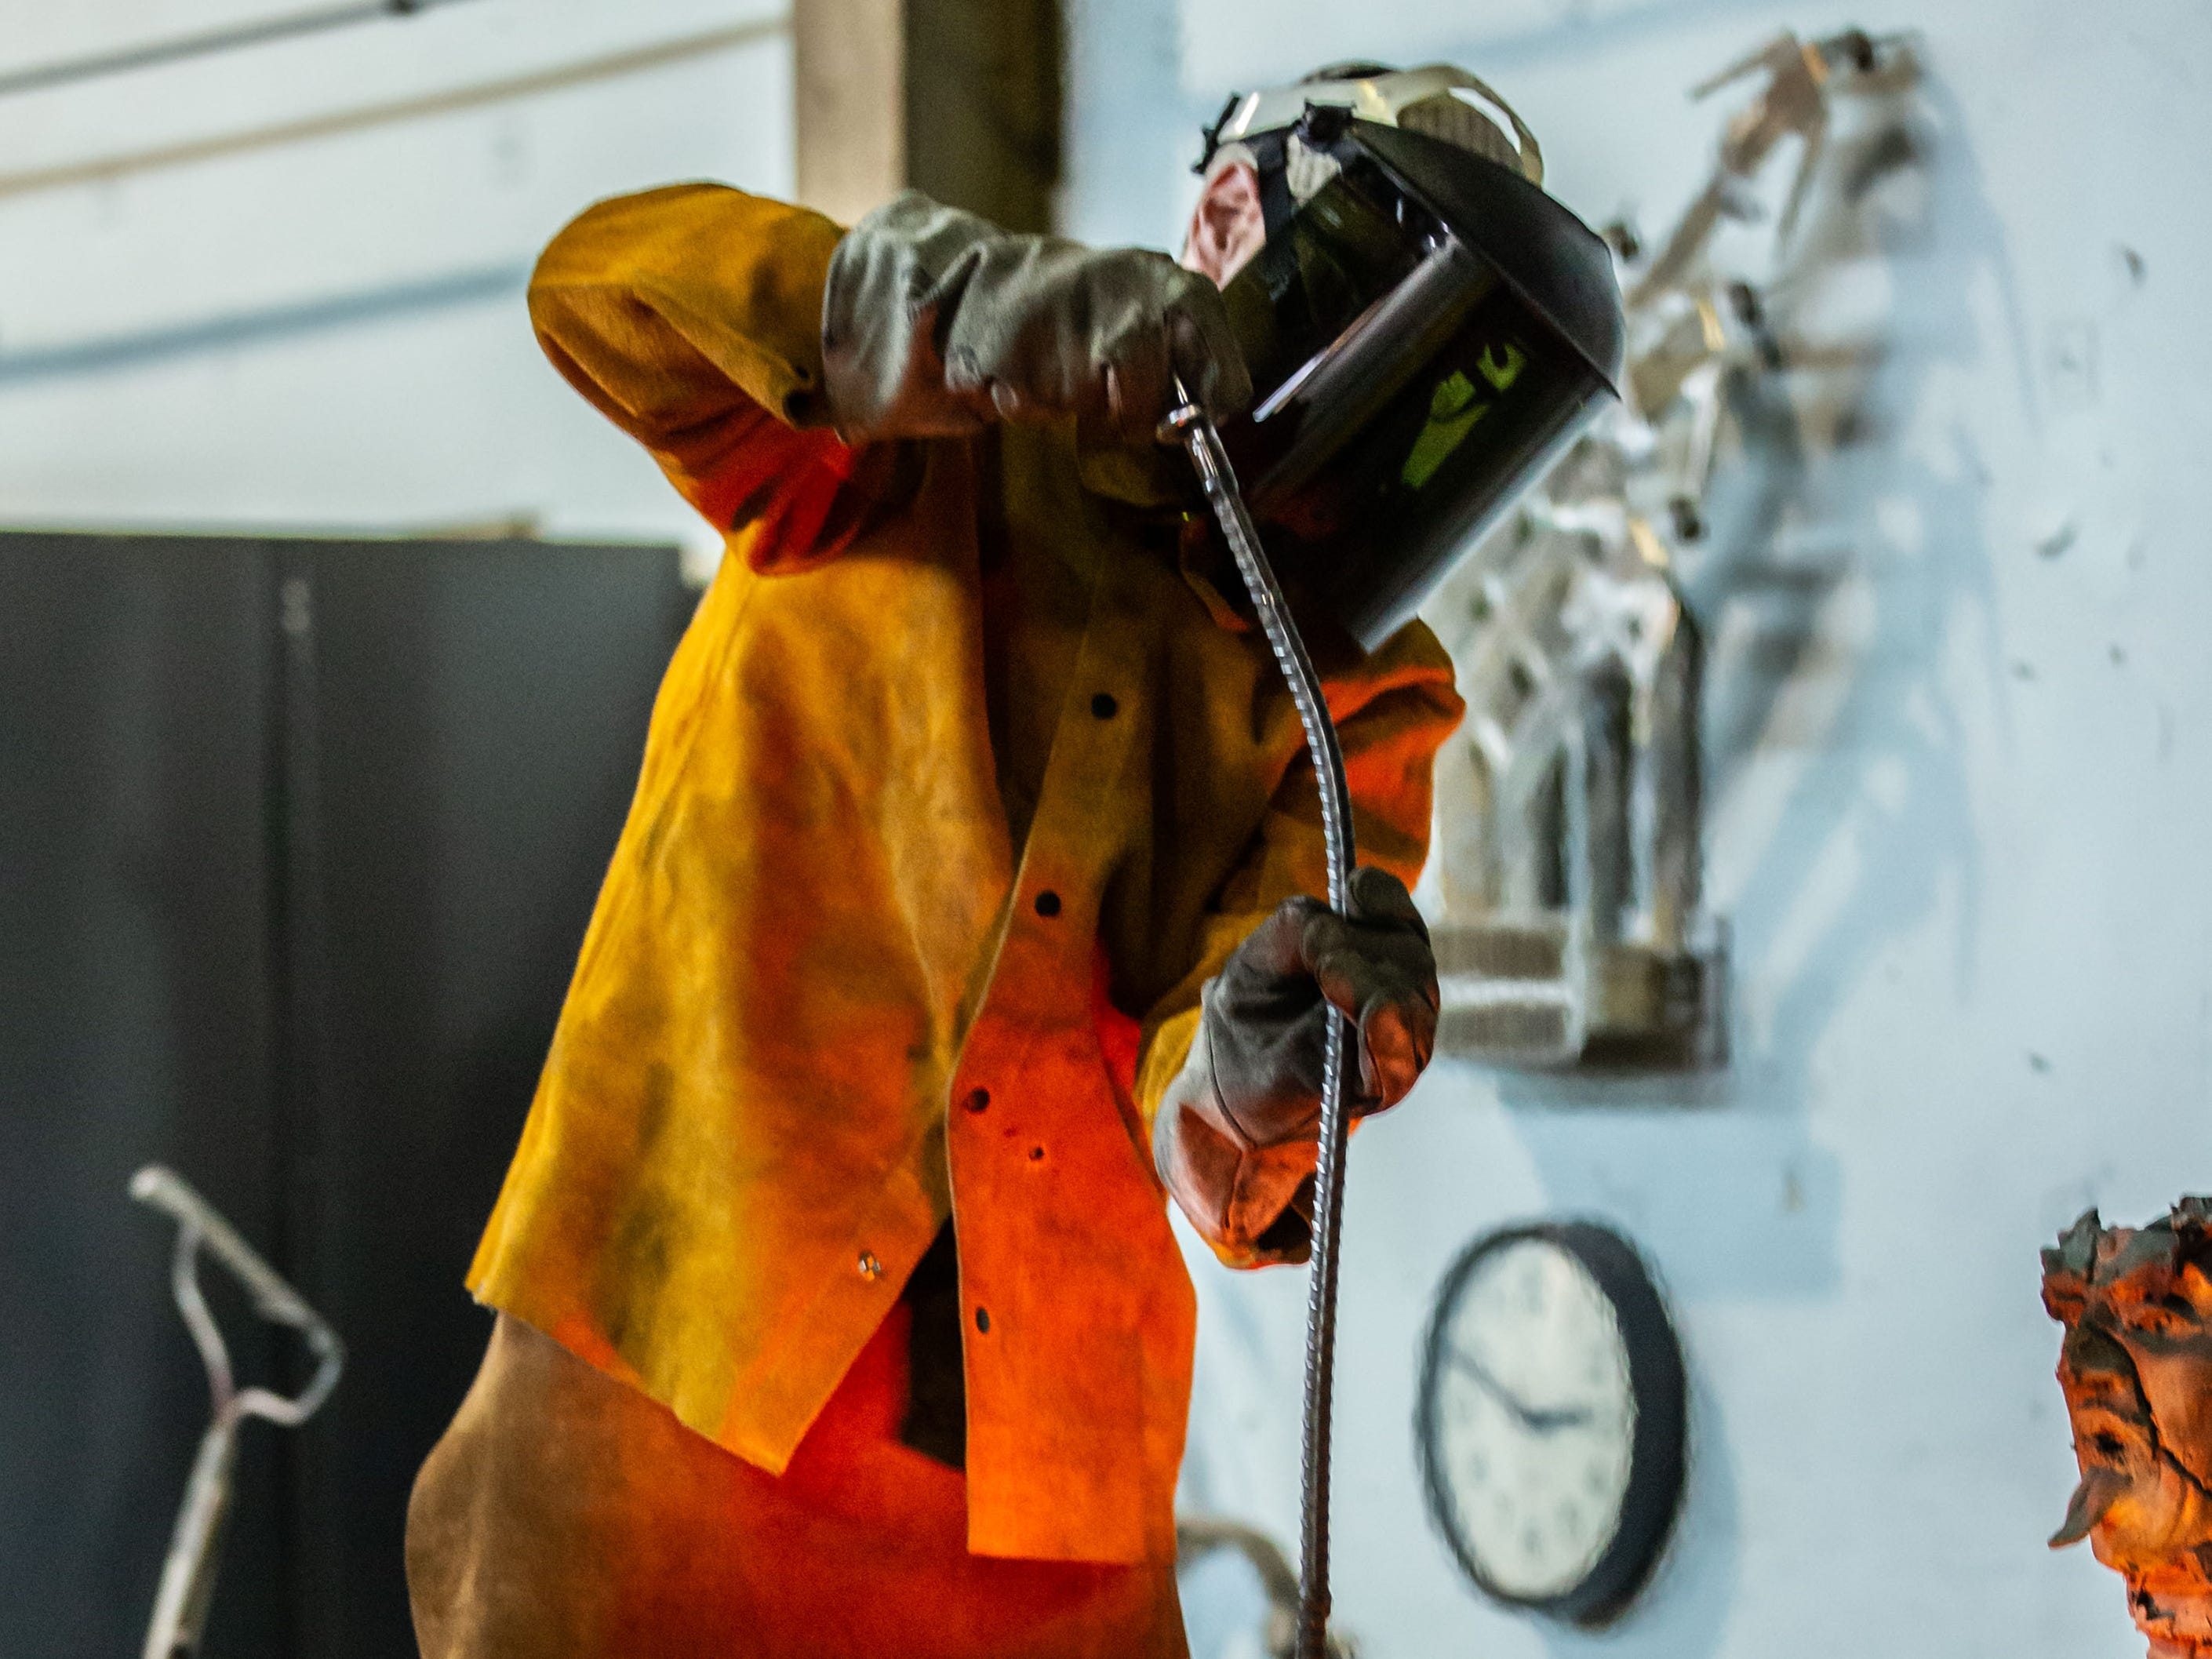 """A metal worker at Vanguard Sculpture Services in Milwaukee removes impurities from a crucible of molten bronze prior to pouring components of """"Da Crusher"""" bronze statue on Wednesday, March 27, 2019."""